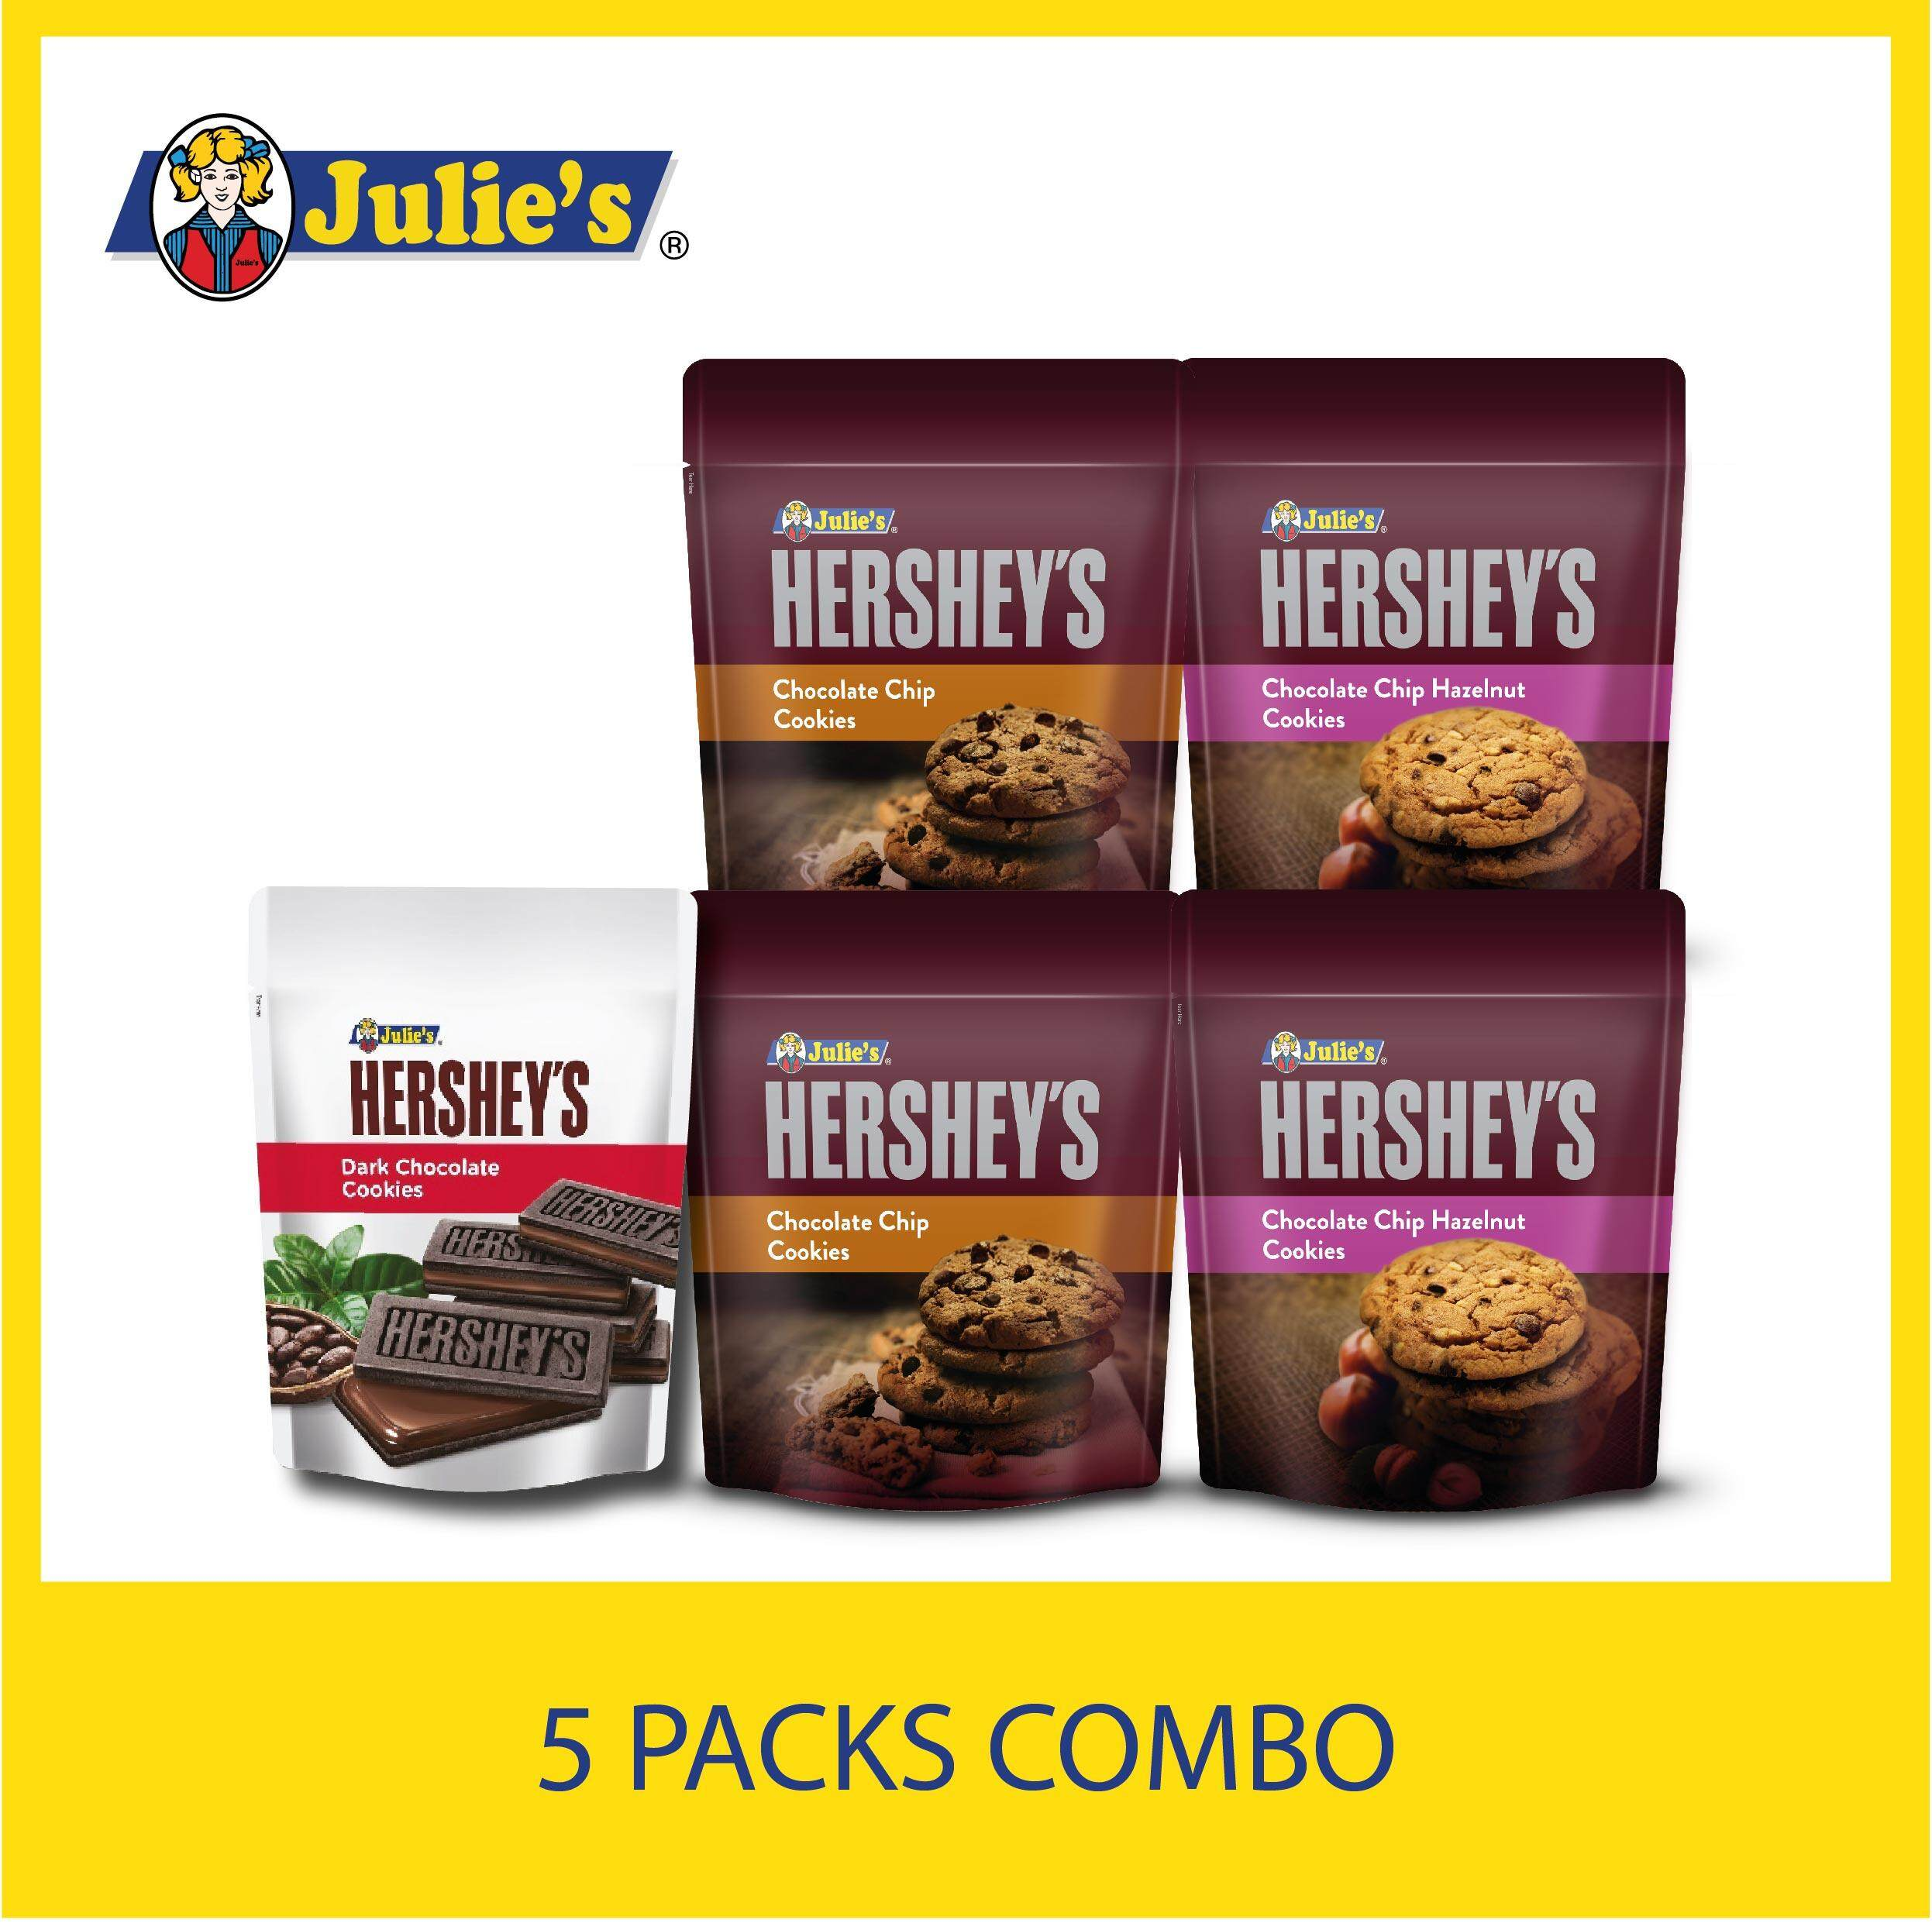 Julie's Hershey's Chocolate Cookies Lover + Free 5 pack Convi pack Biscuit